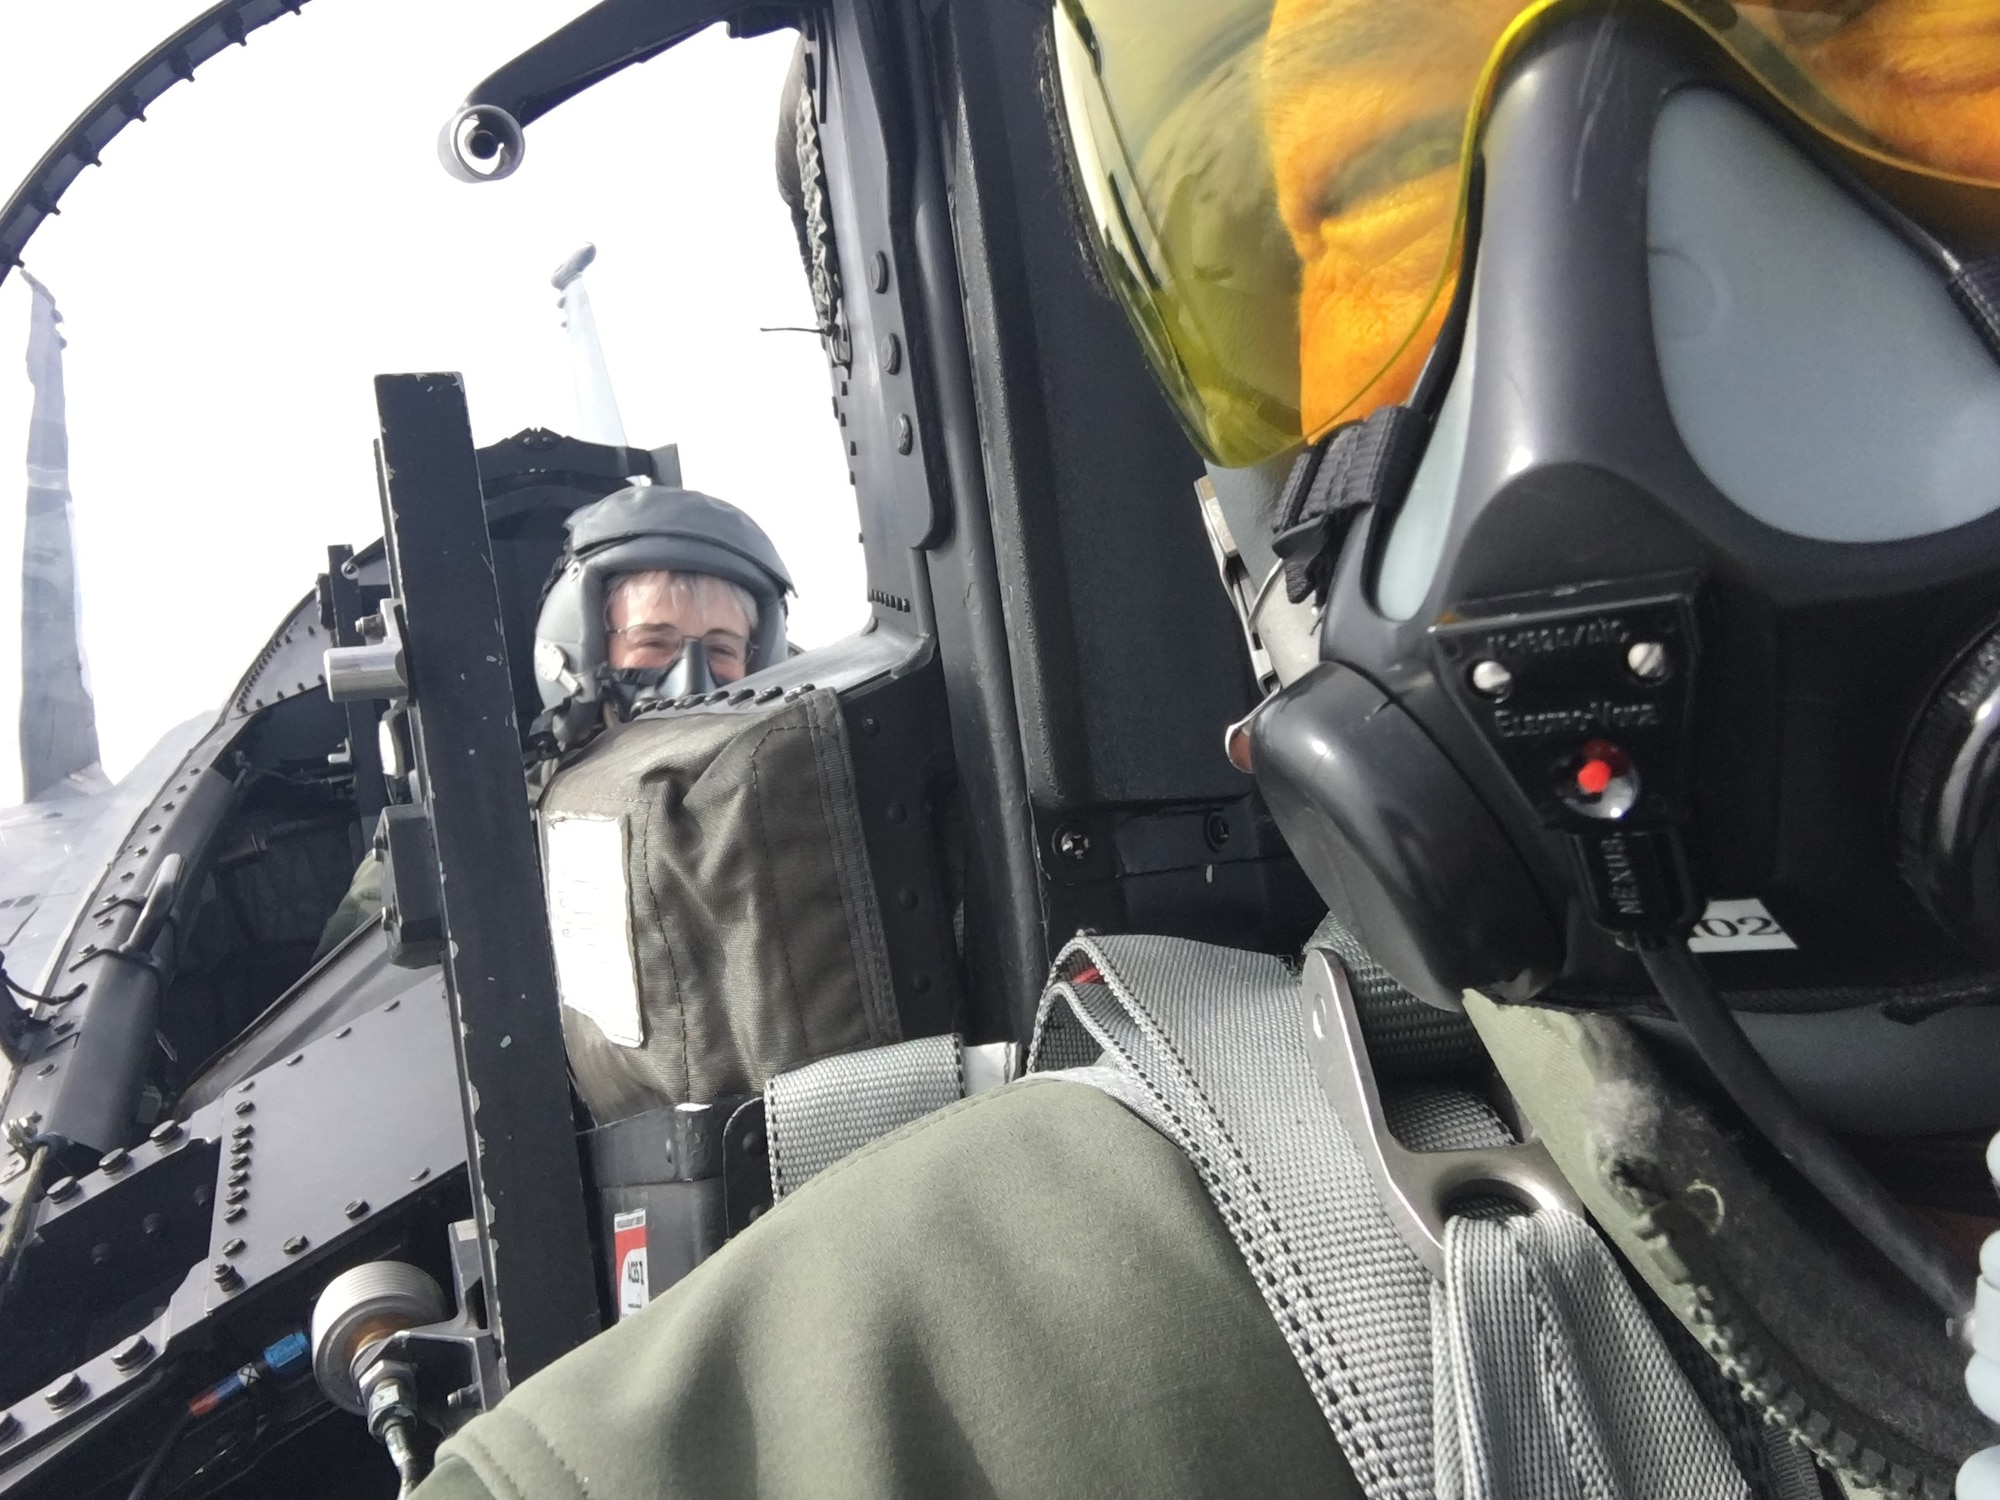 Secretary fo the Air Force flies with 173rd Fighter Wing